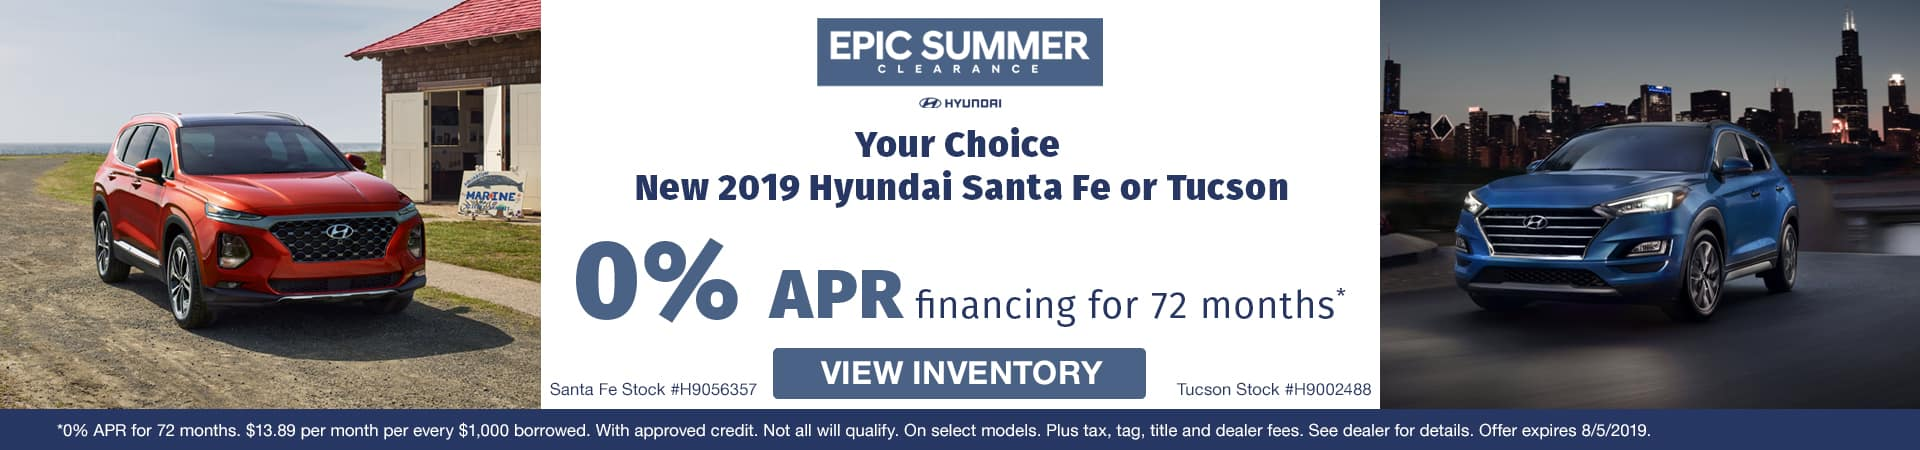 Get 0% APR on a new 2019 Hyundai Santa Fe or Tuscon in Murfreesboro TN